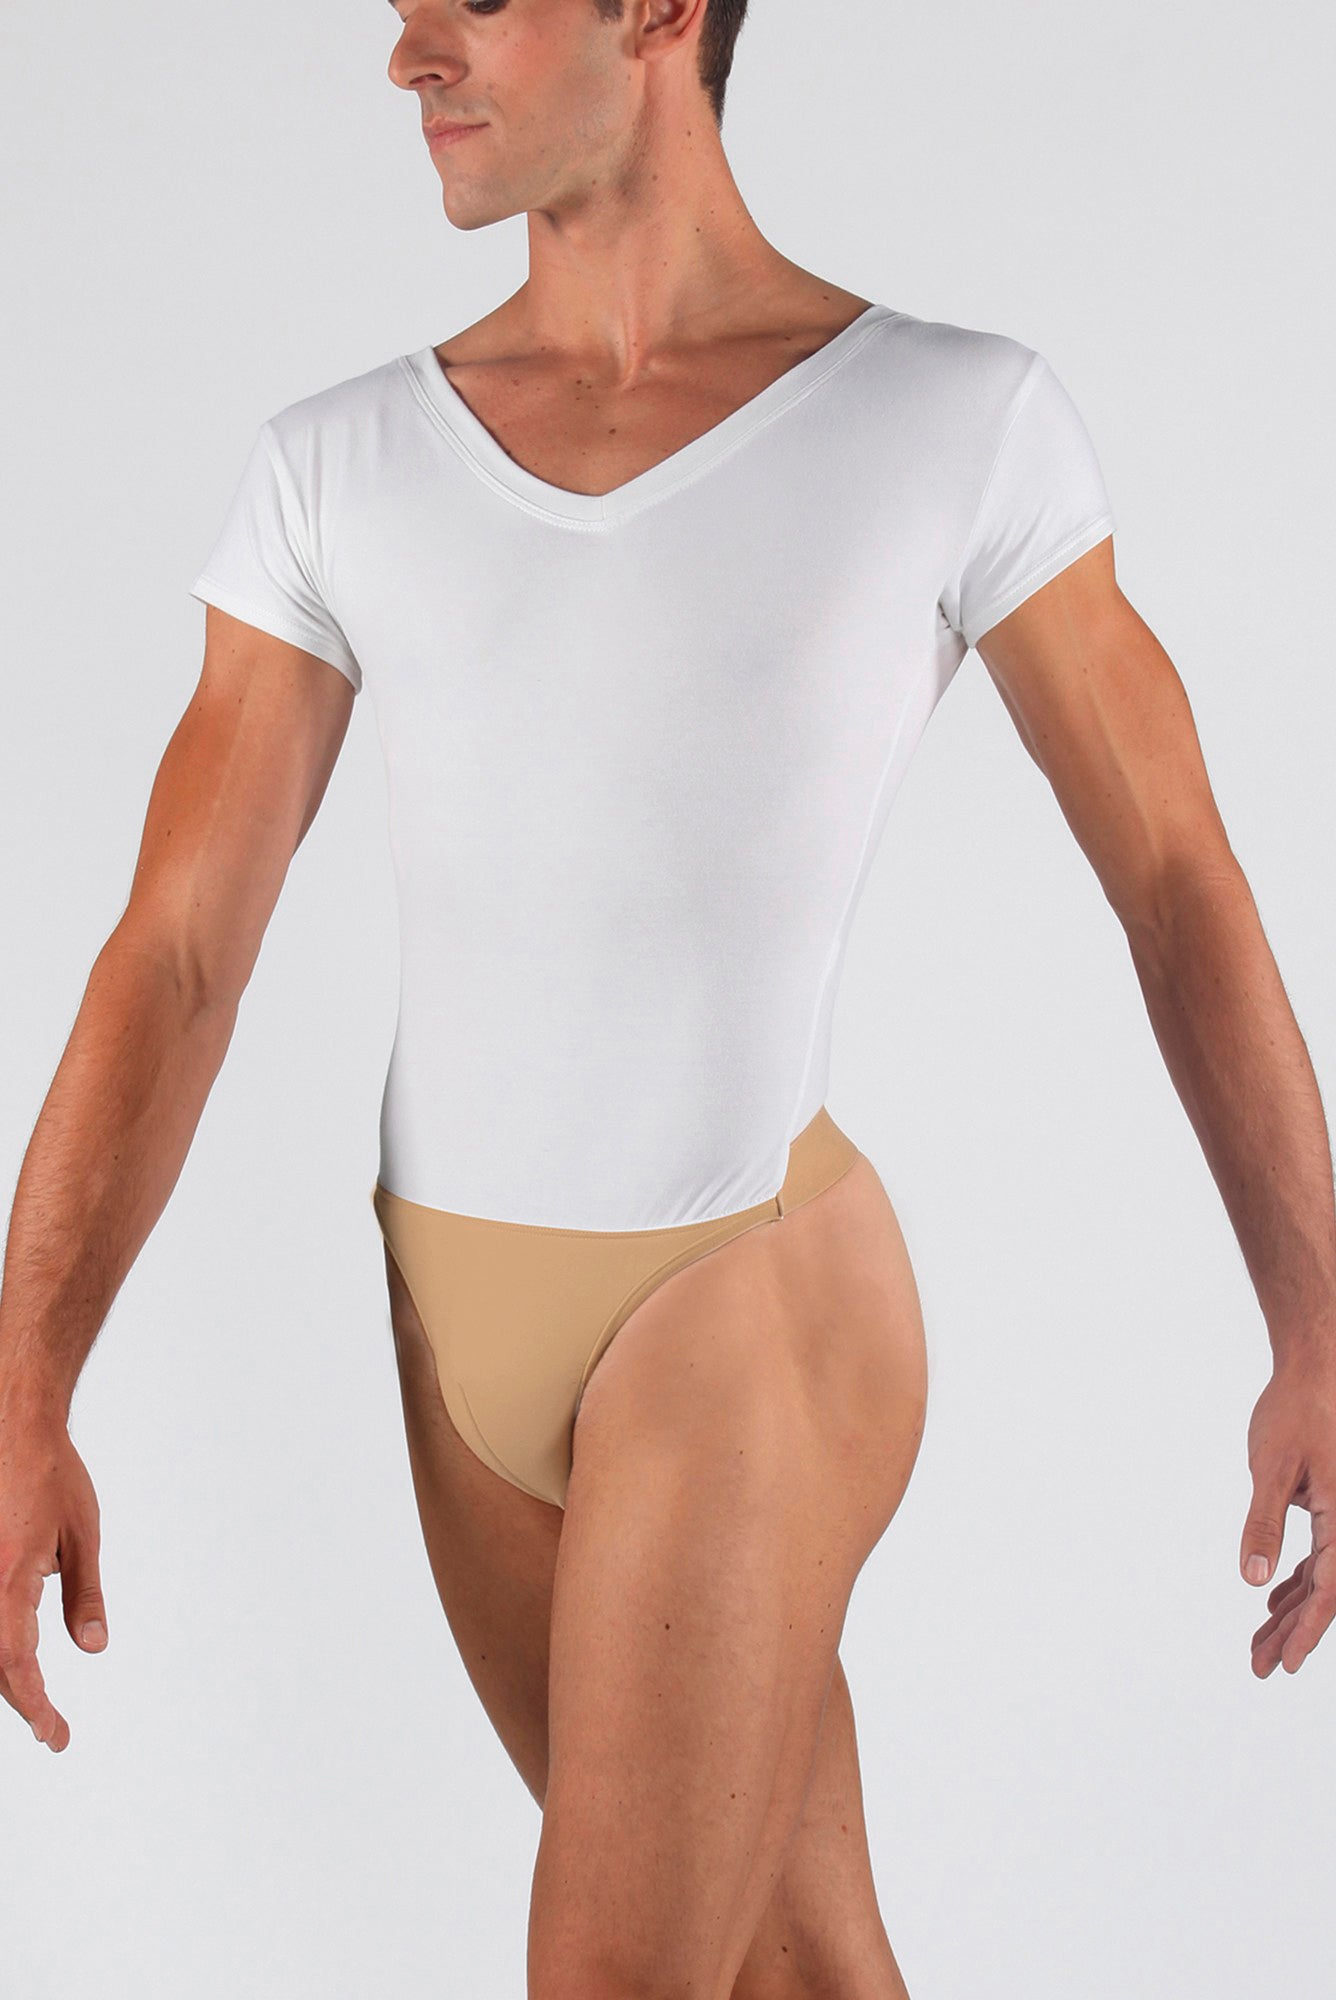 Wear Moi Horacio Men's V-Neck Leotard with attached Dance Belt